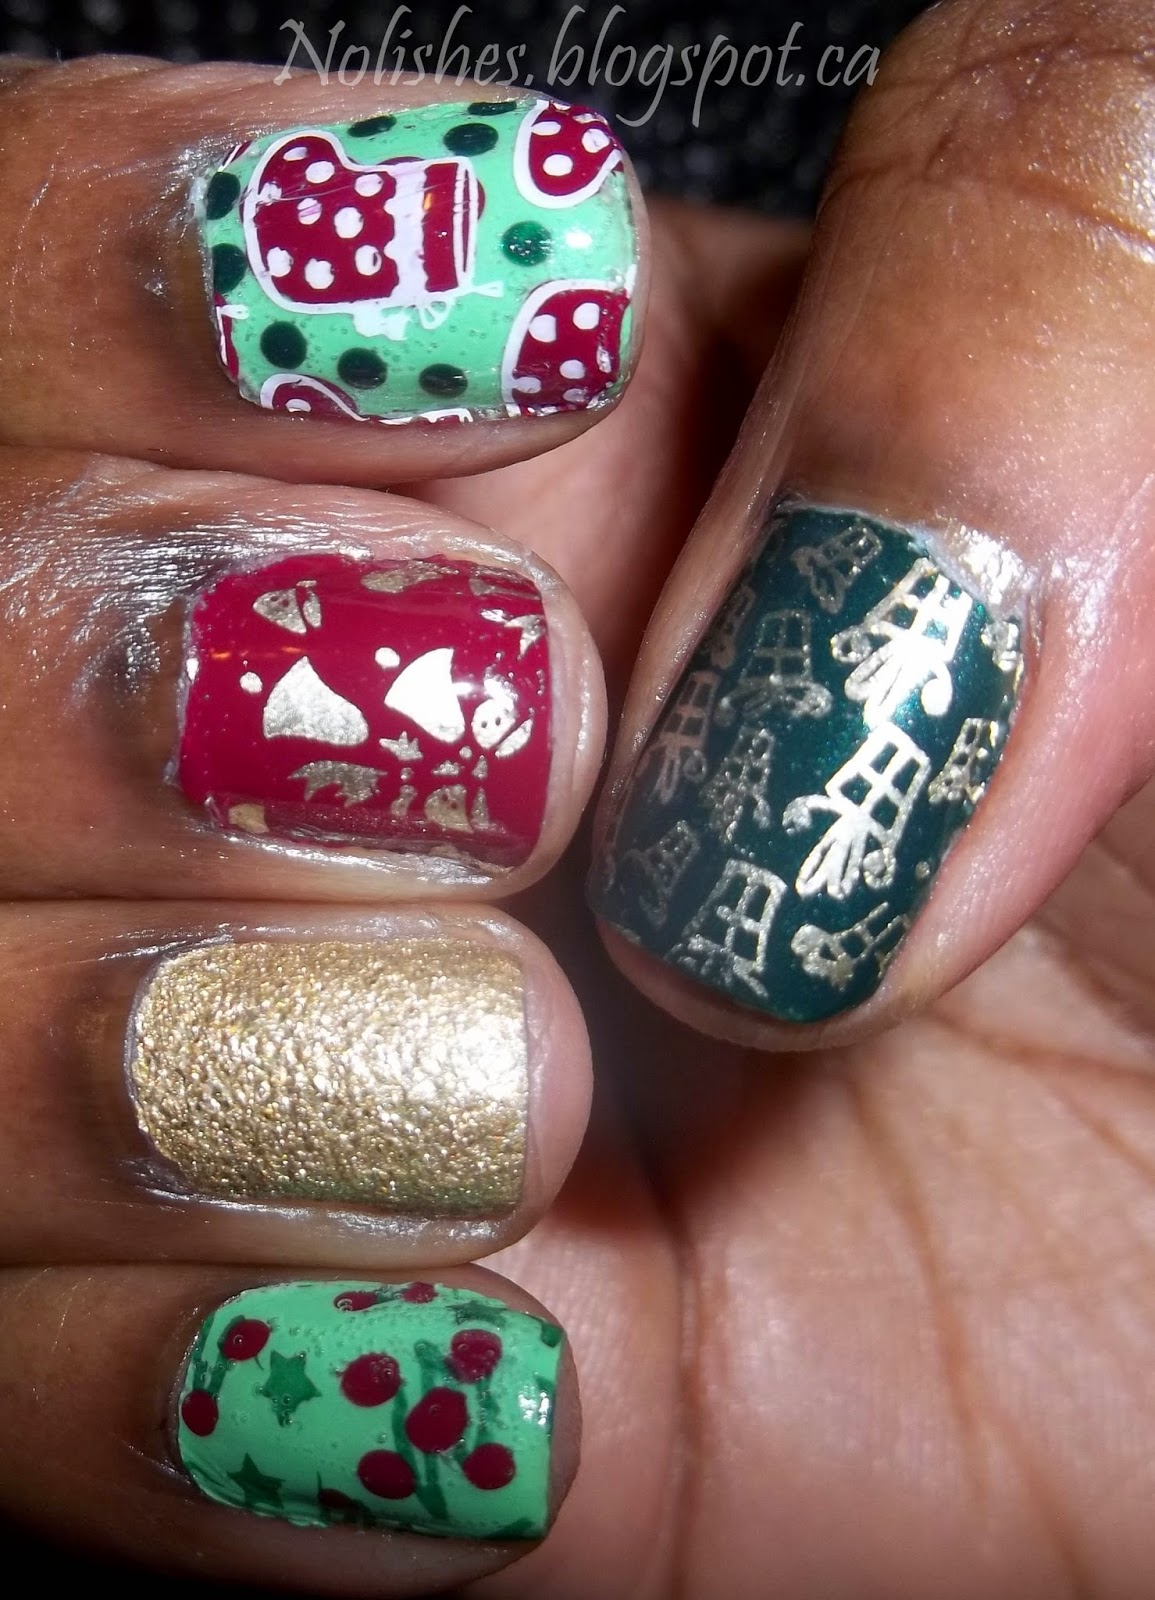 Christmas Themed Nail stamping manicure using light and dark green, red, gold, and white nail polishes. Stamped with images of presents, stockings, bells, and trees.